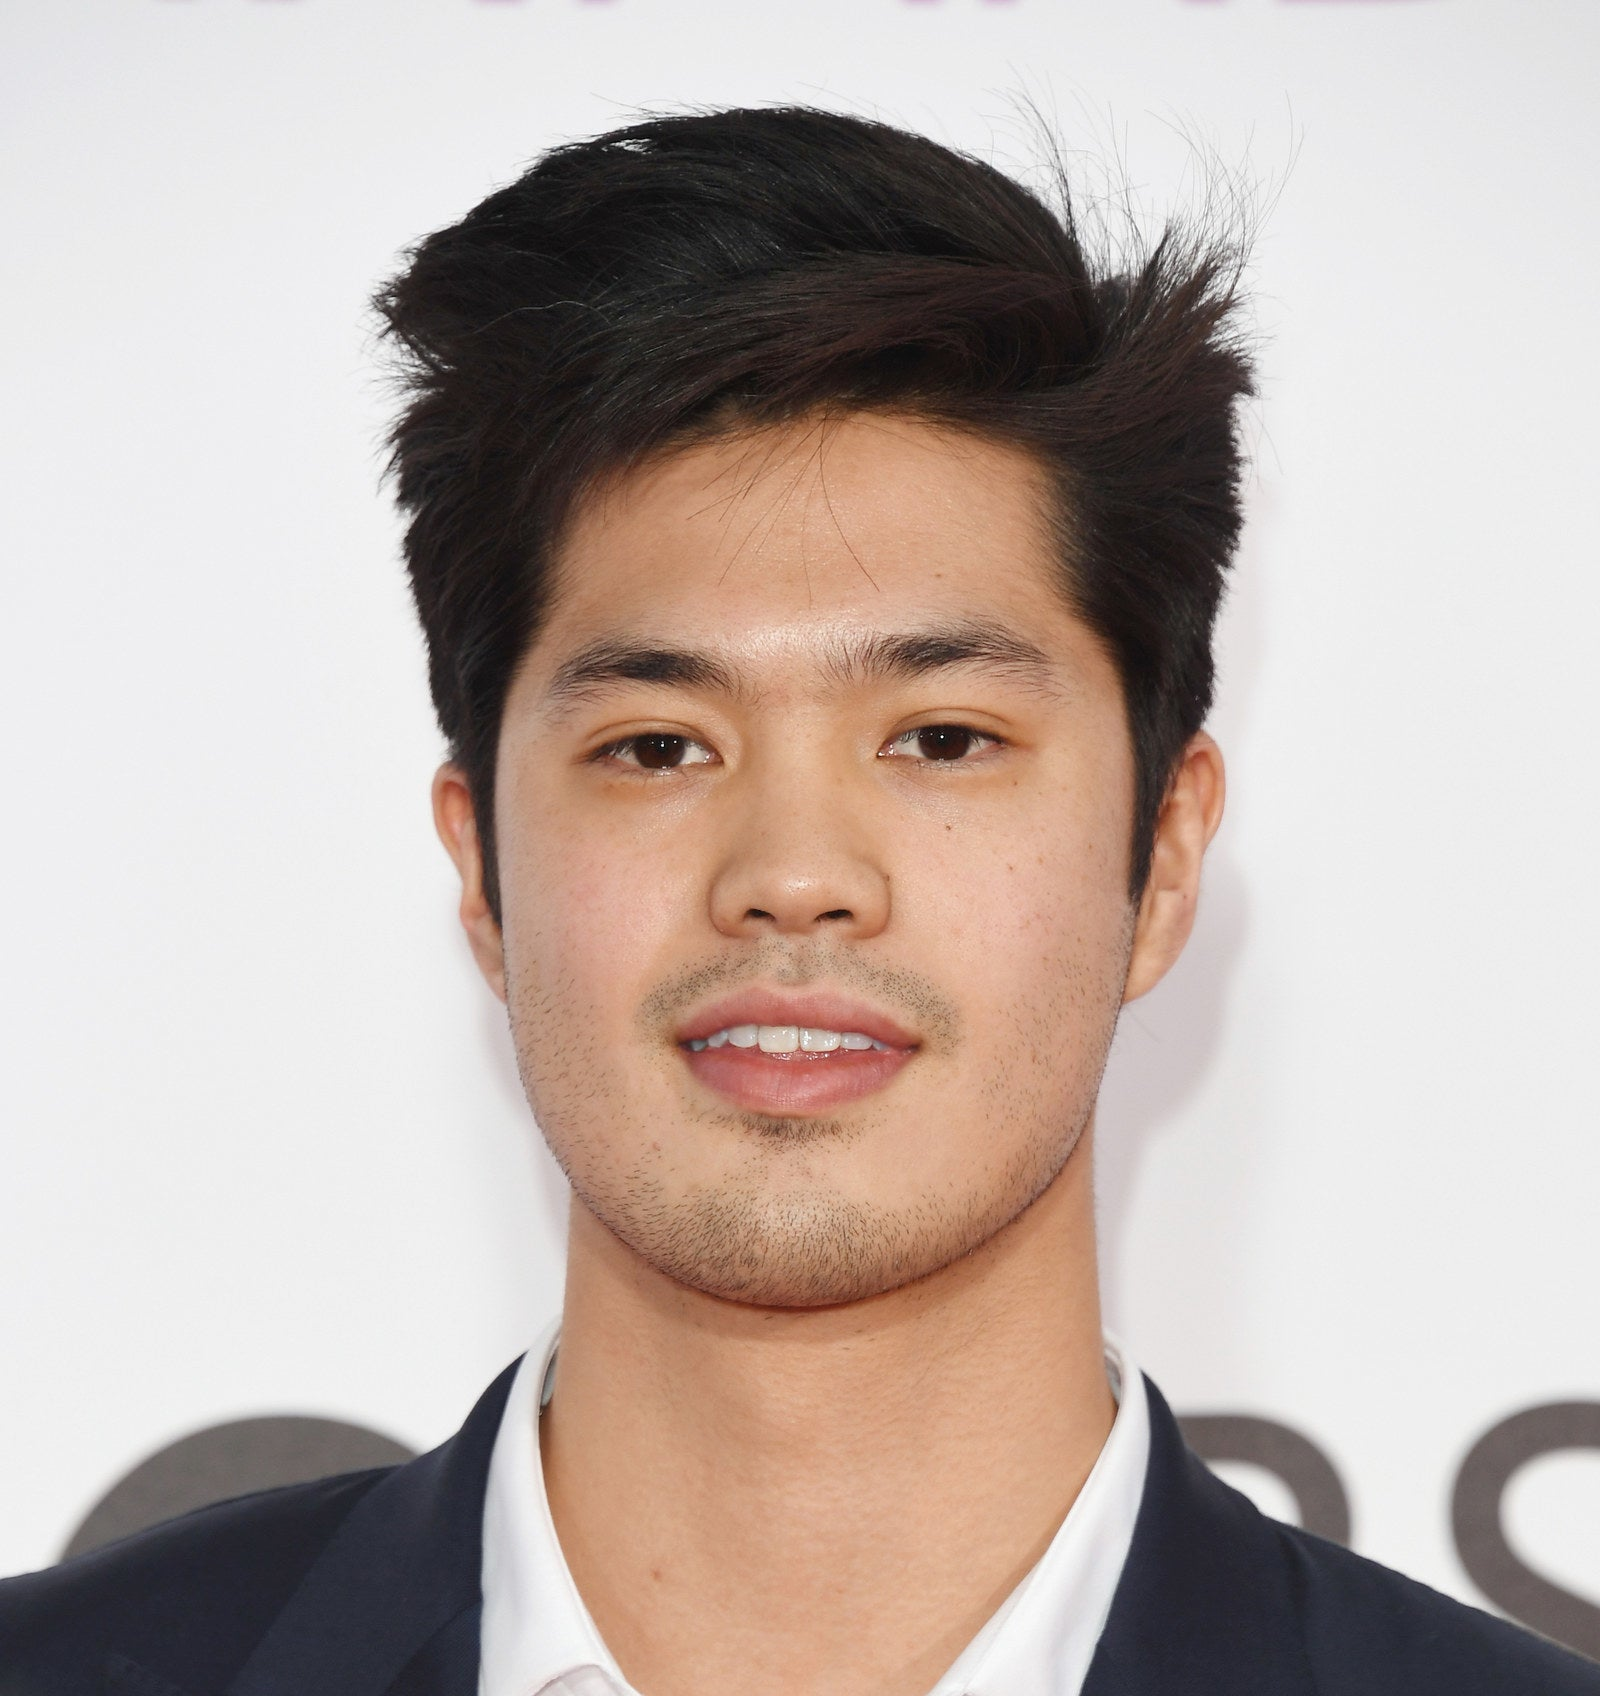 So, you know Ross Butler right? He stars as high school jock Zach on 13 Reasons Why. Well, he also plays Reggie Mantle on The CW's Riverdale.